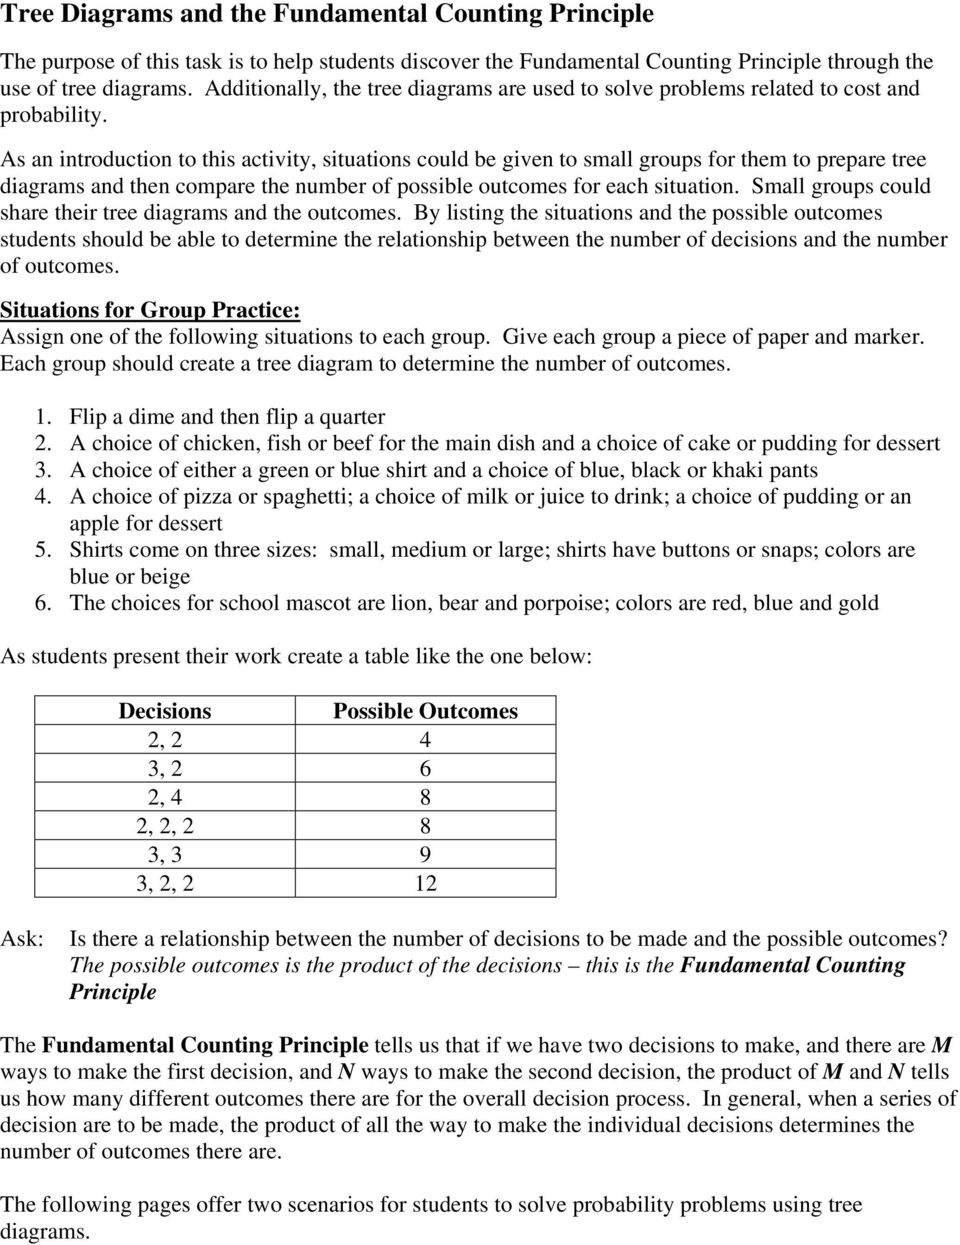 medium resolution of Tree Diagrams and the Fundamental Counting Principle - PDF Free Download